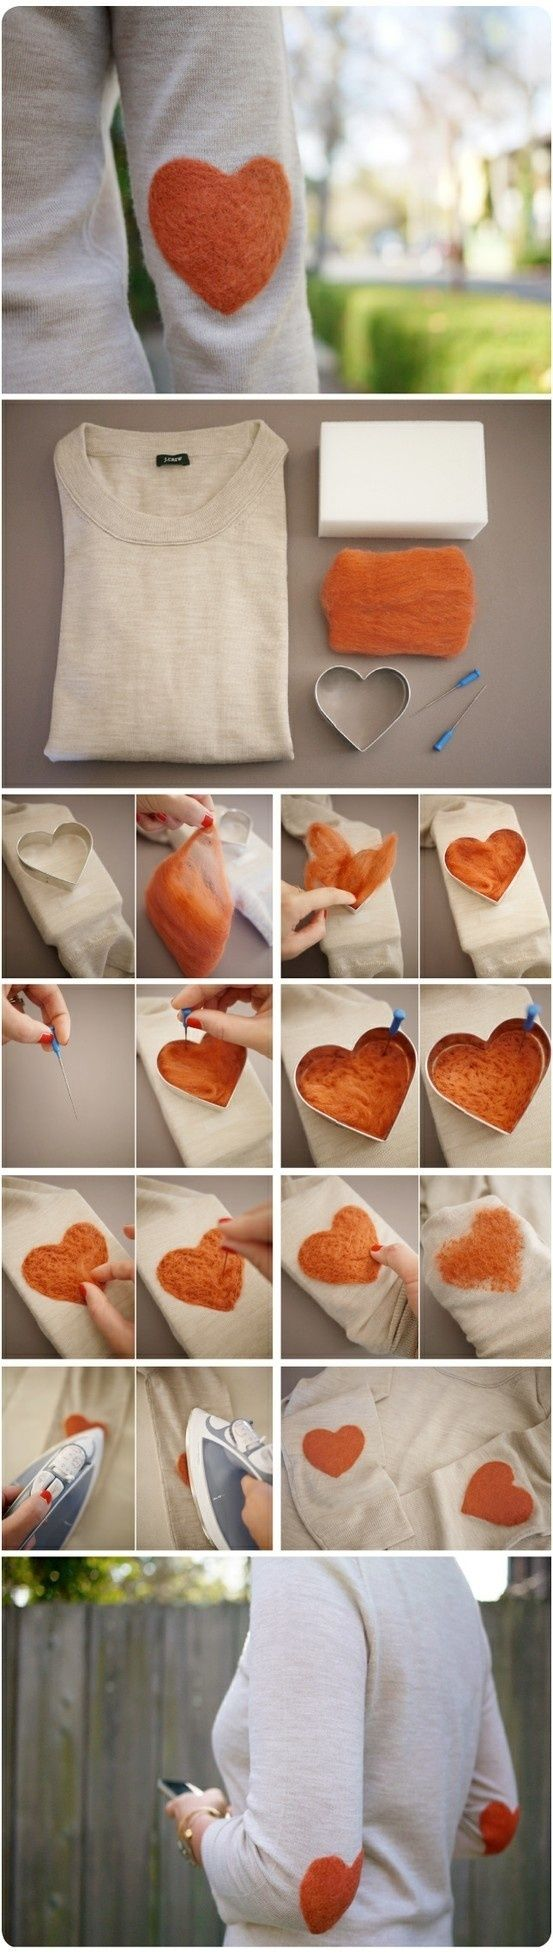 17 Interesting And Popular DIY Ideas